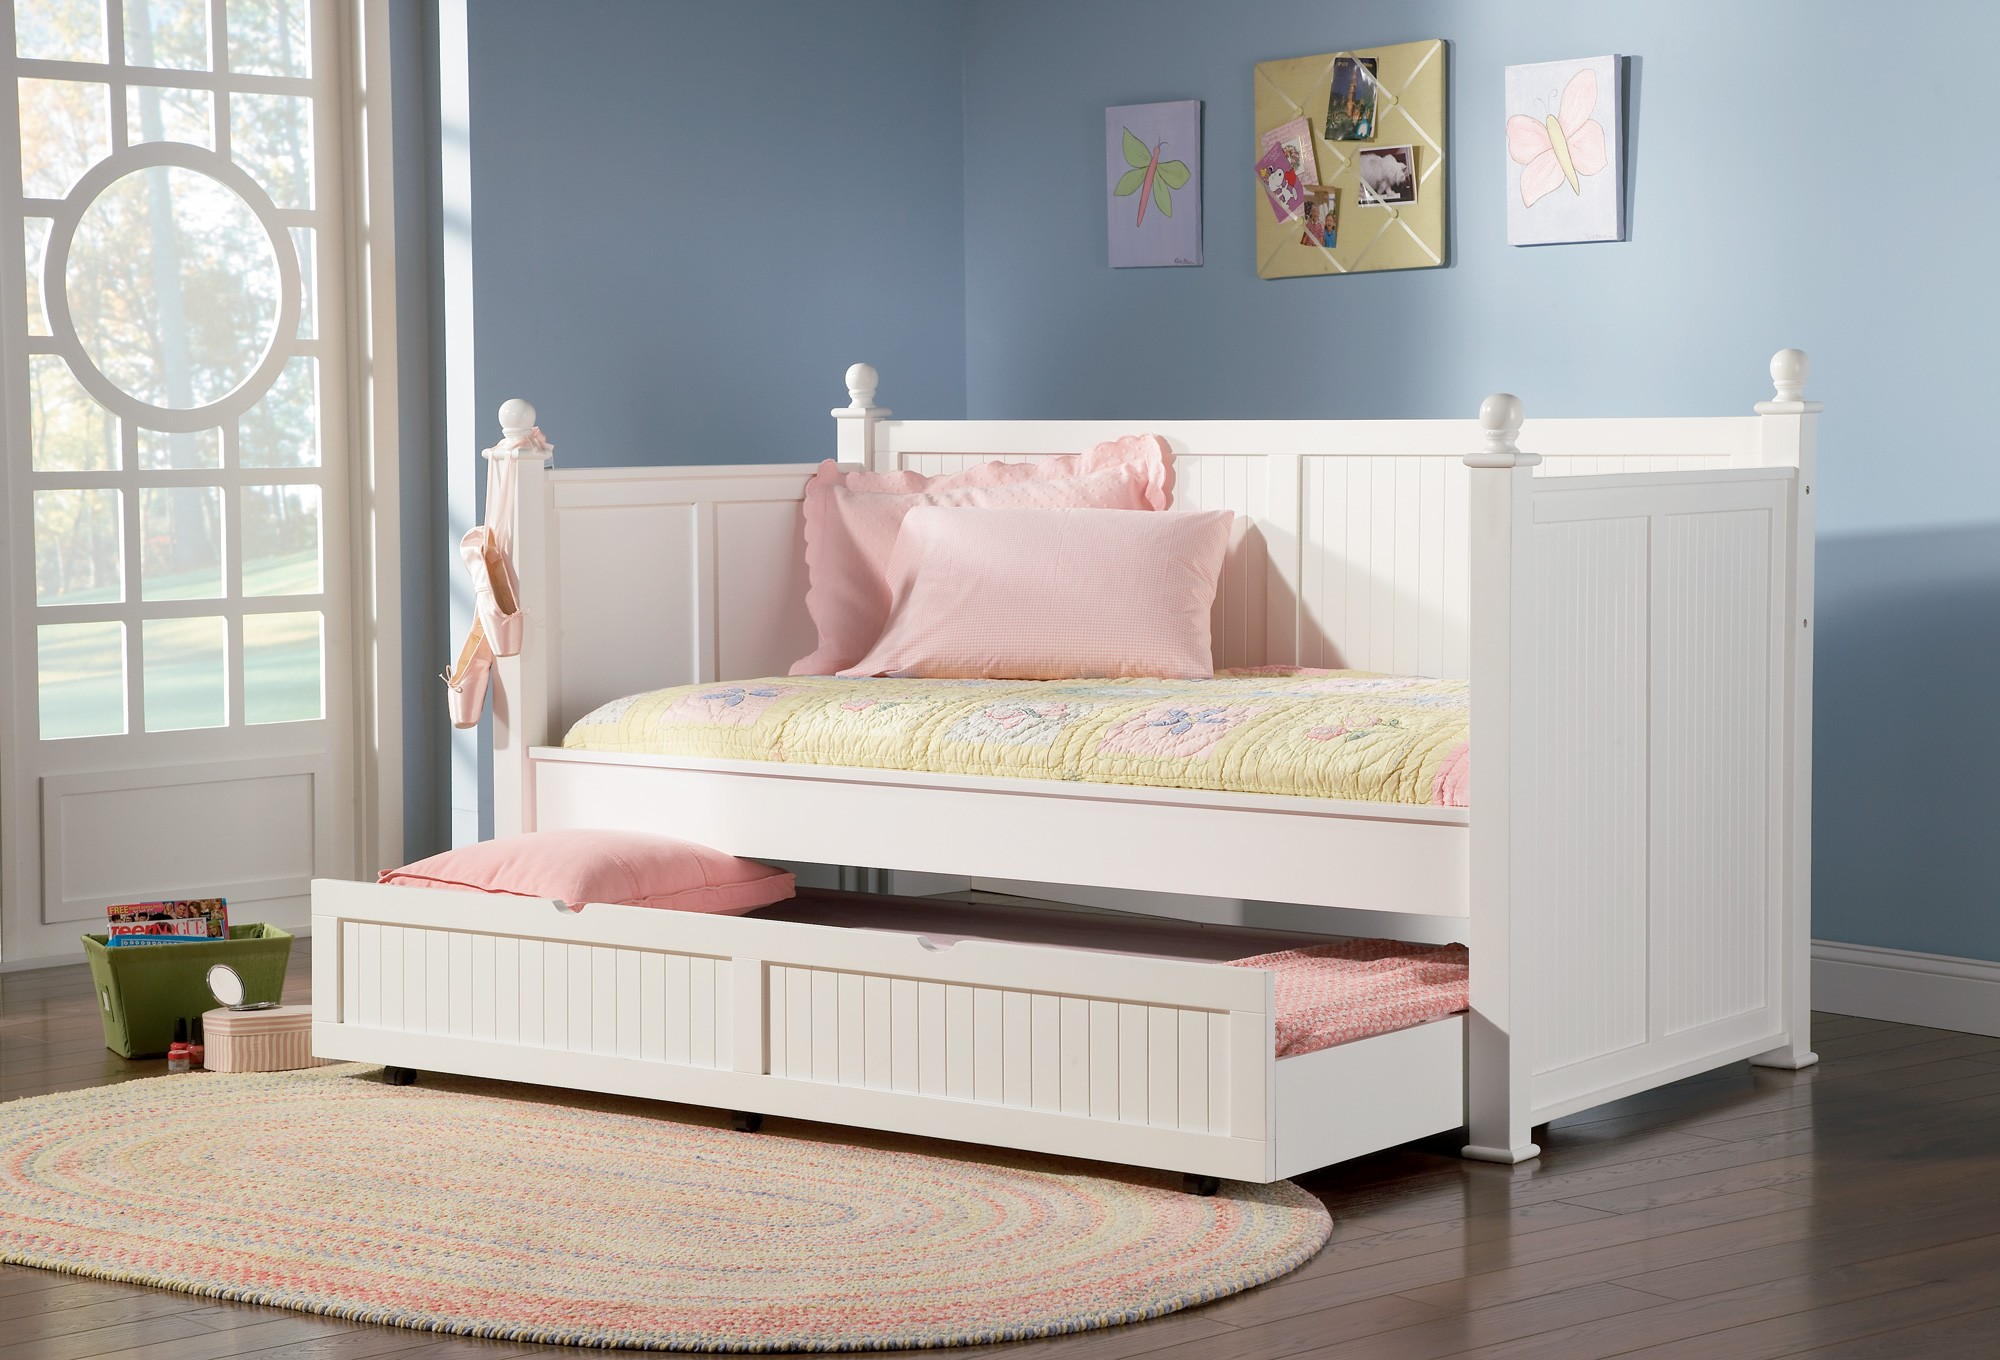 Twin Size Day Bed 300026 From Coaster 300026 Coleman